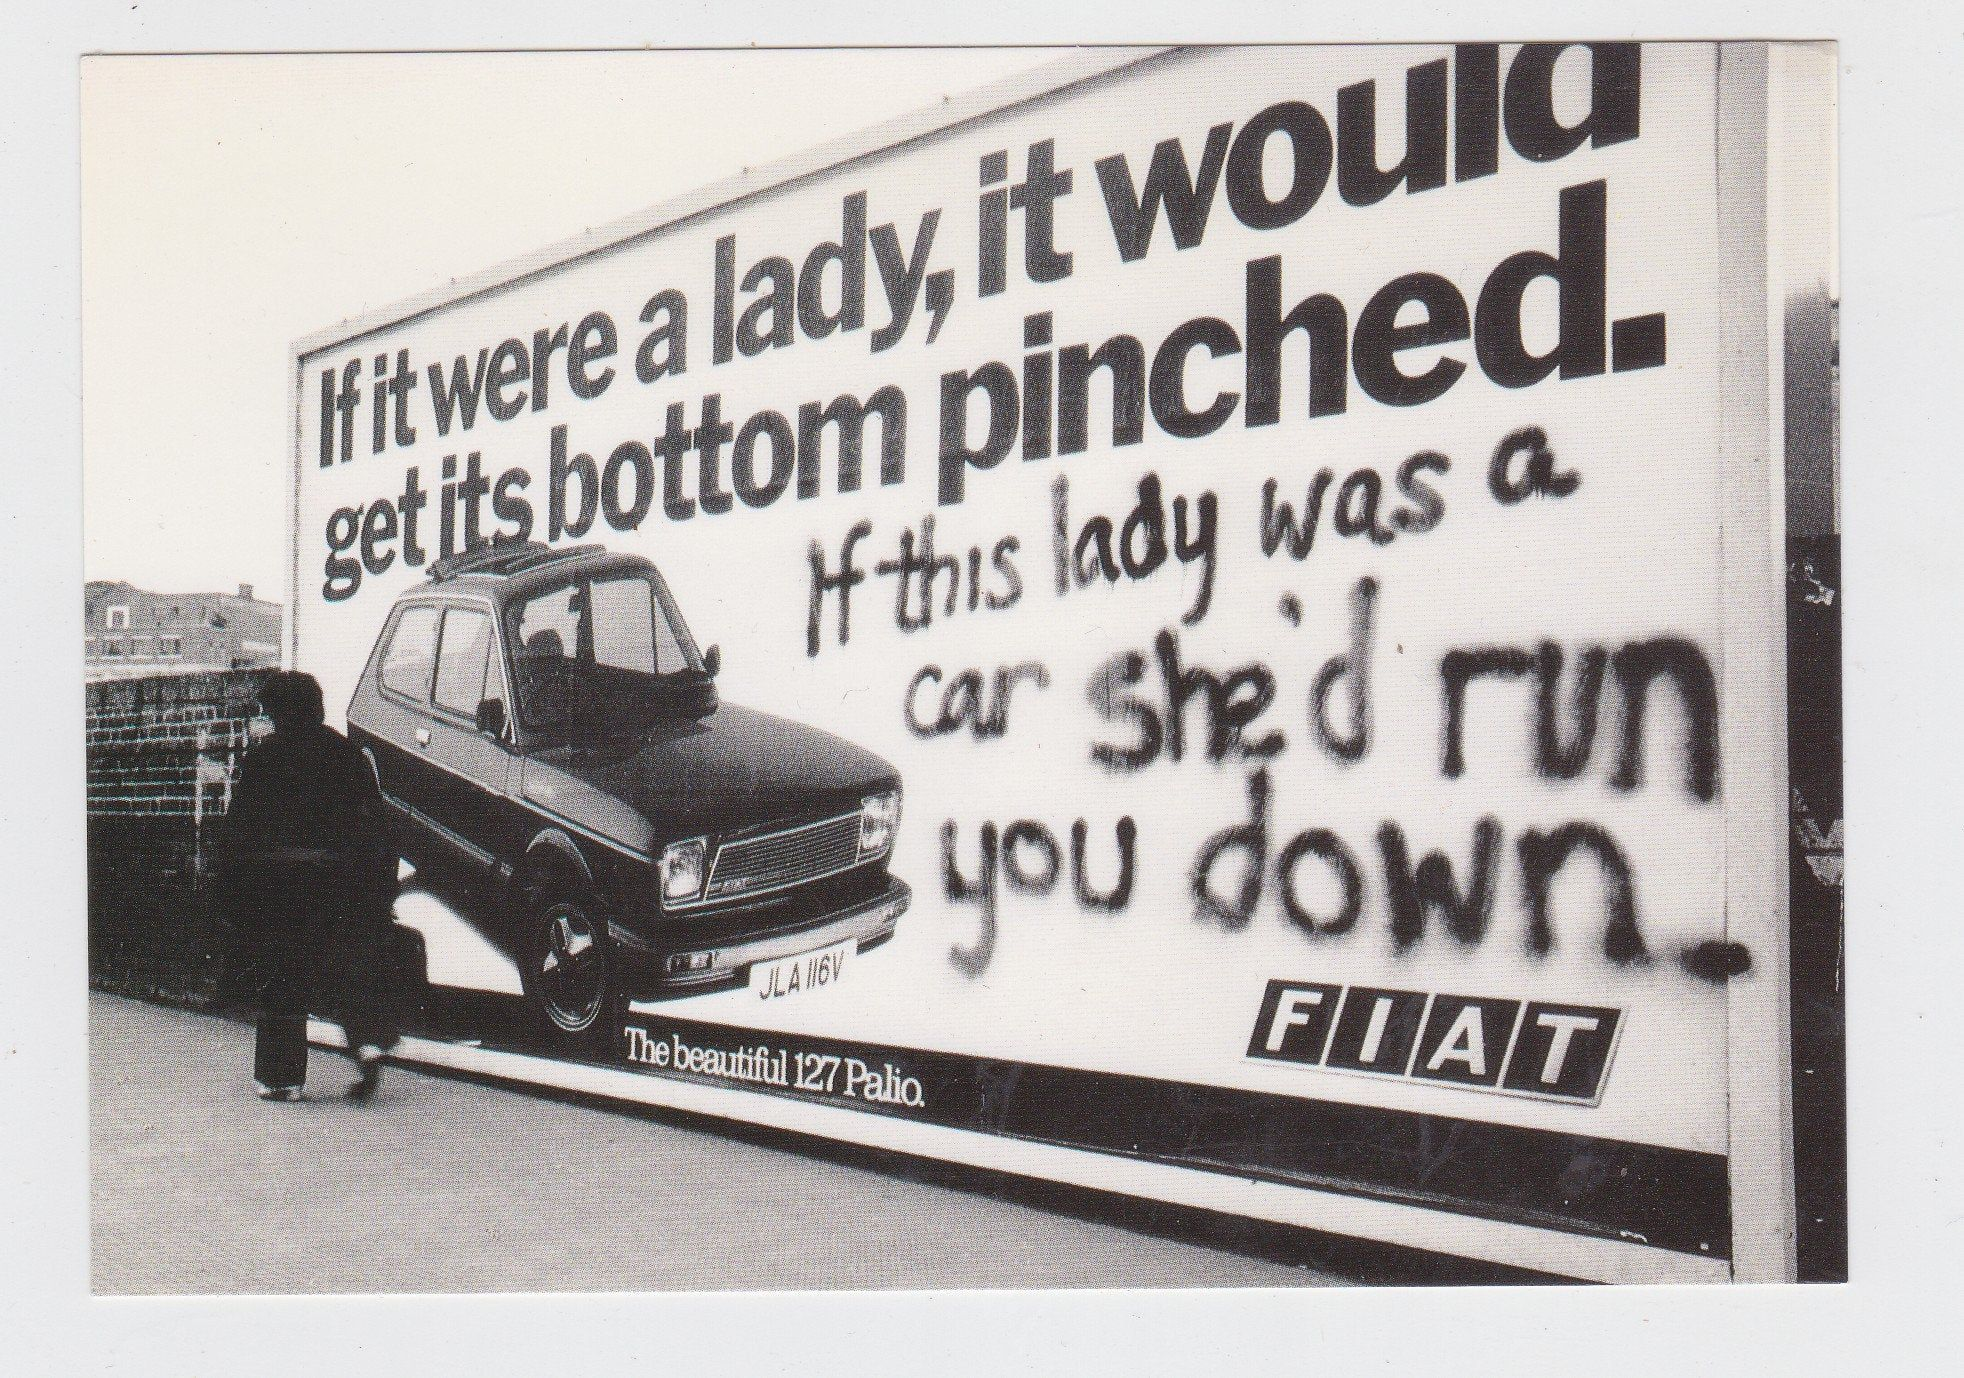 Fiat 127 Palio If It Were A Lady Billboard Postcard 1970 S In 2020 Car Shed Women S Liberation Movement Womens Liberation